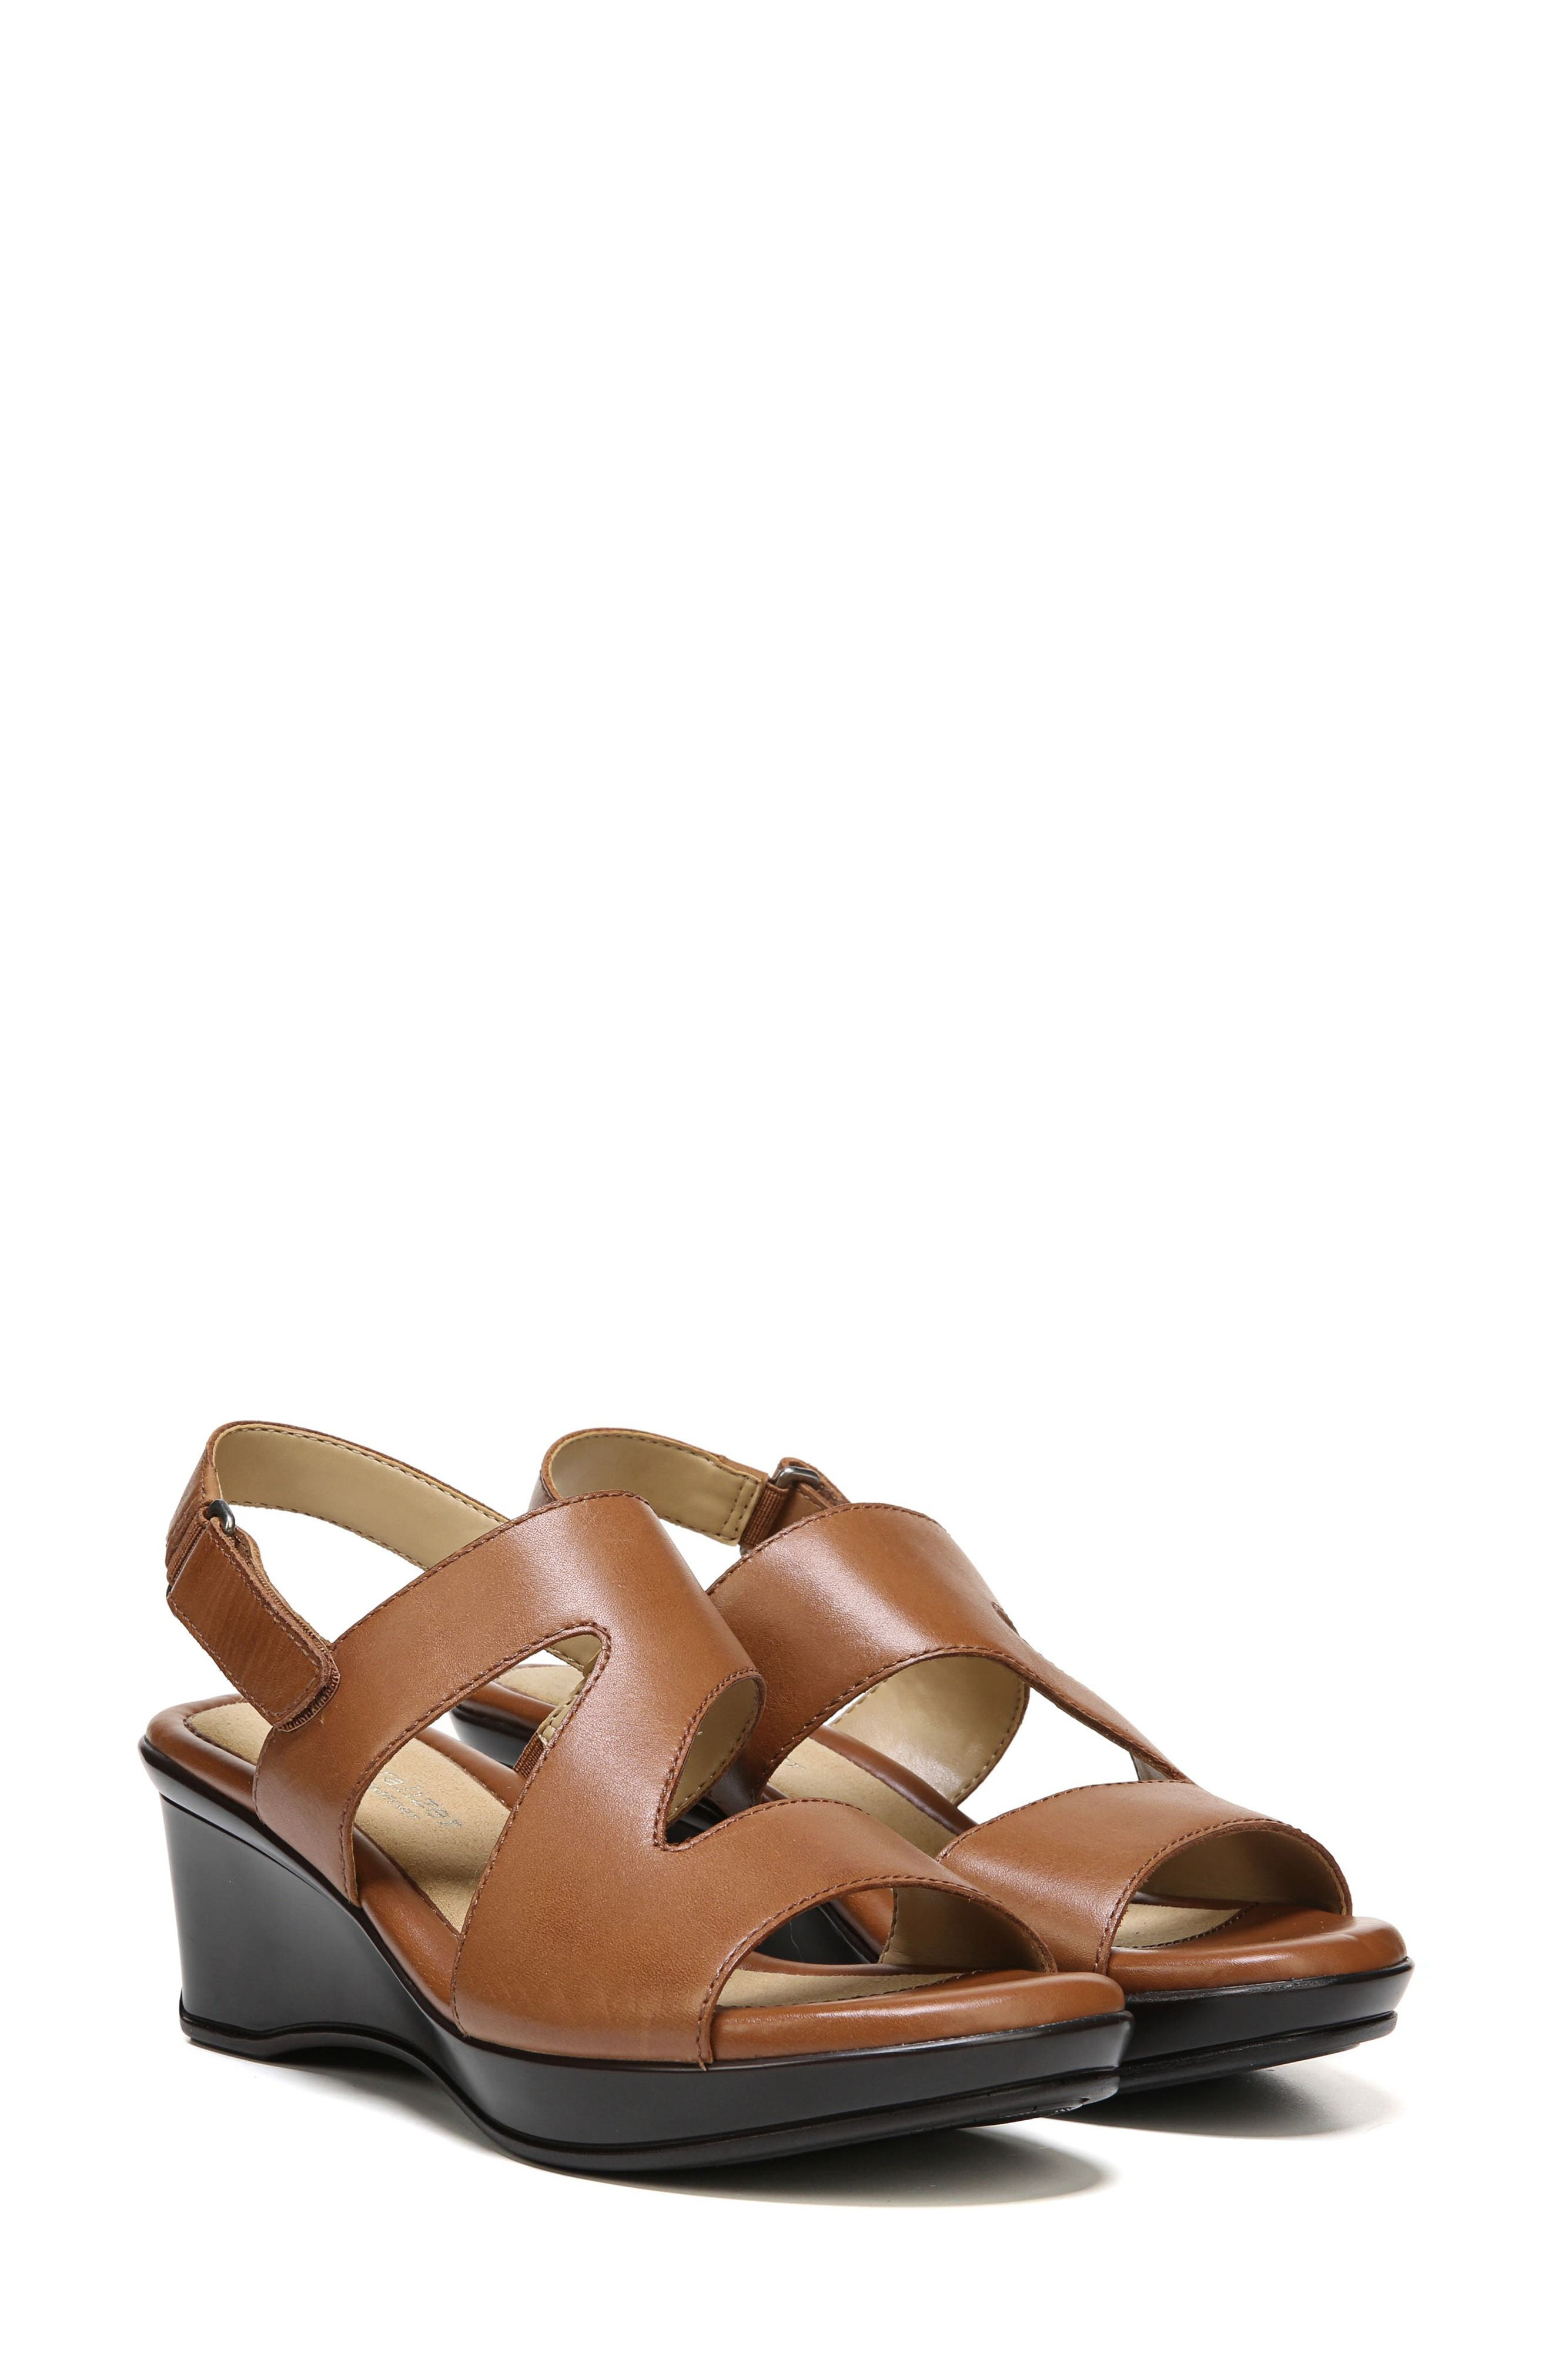 Valerie Wedge Sandal,                             Main thumbnail 1, color,                             SADDLE LEATHER